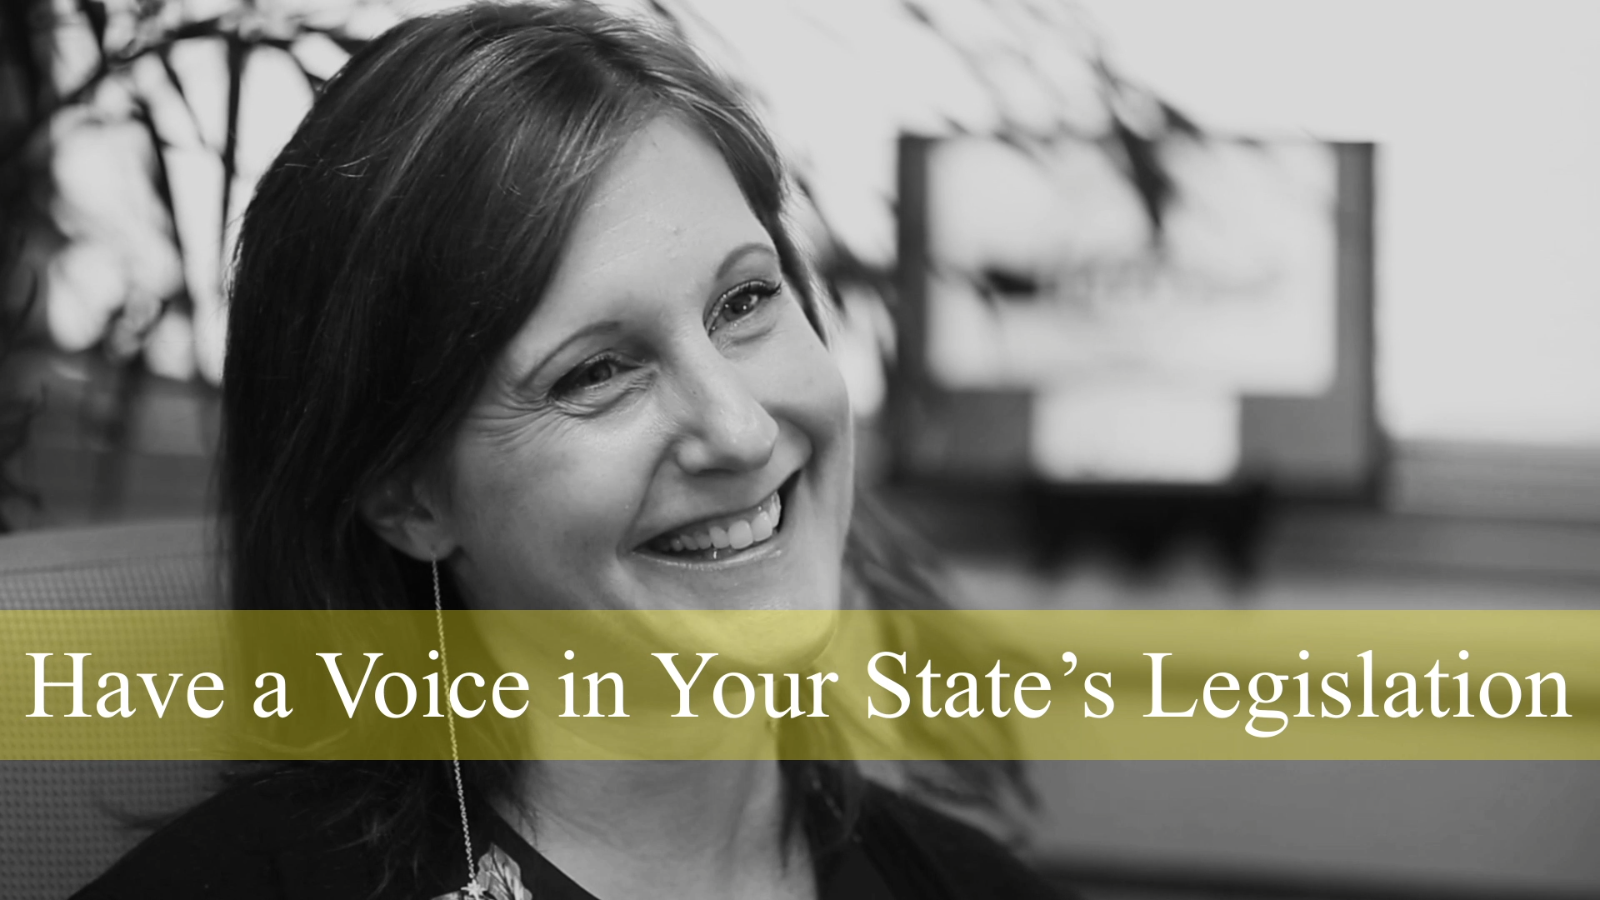 Have A Voice in Your State's Legislation